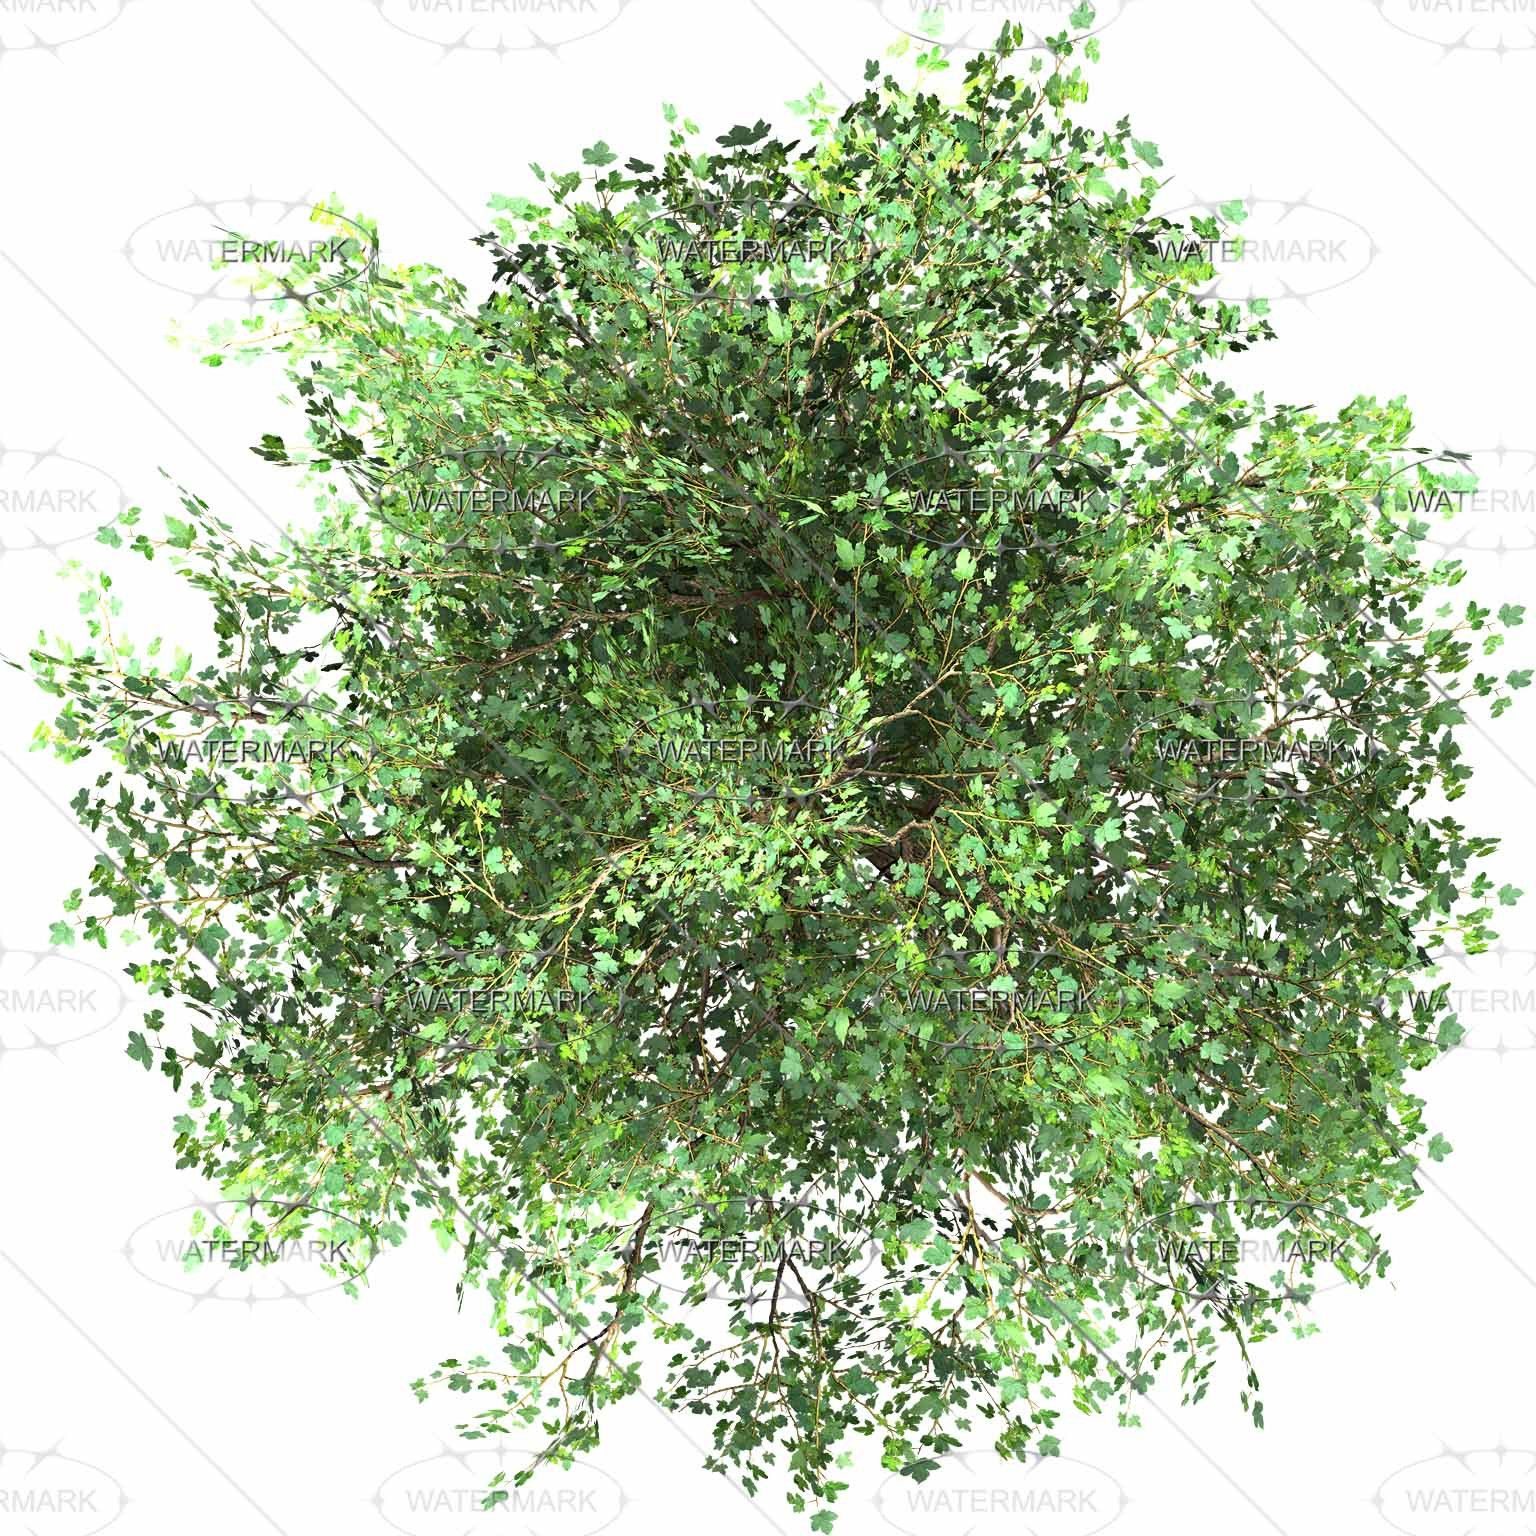 Plants Top View Of Pedunculate Oak Tree Isolated On White Mesmerizing Plan Tree Photoshop Trees Top View Tree Plan Png